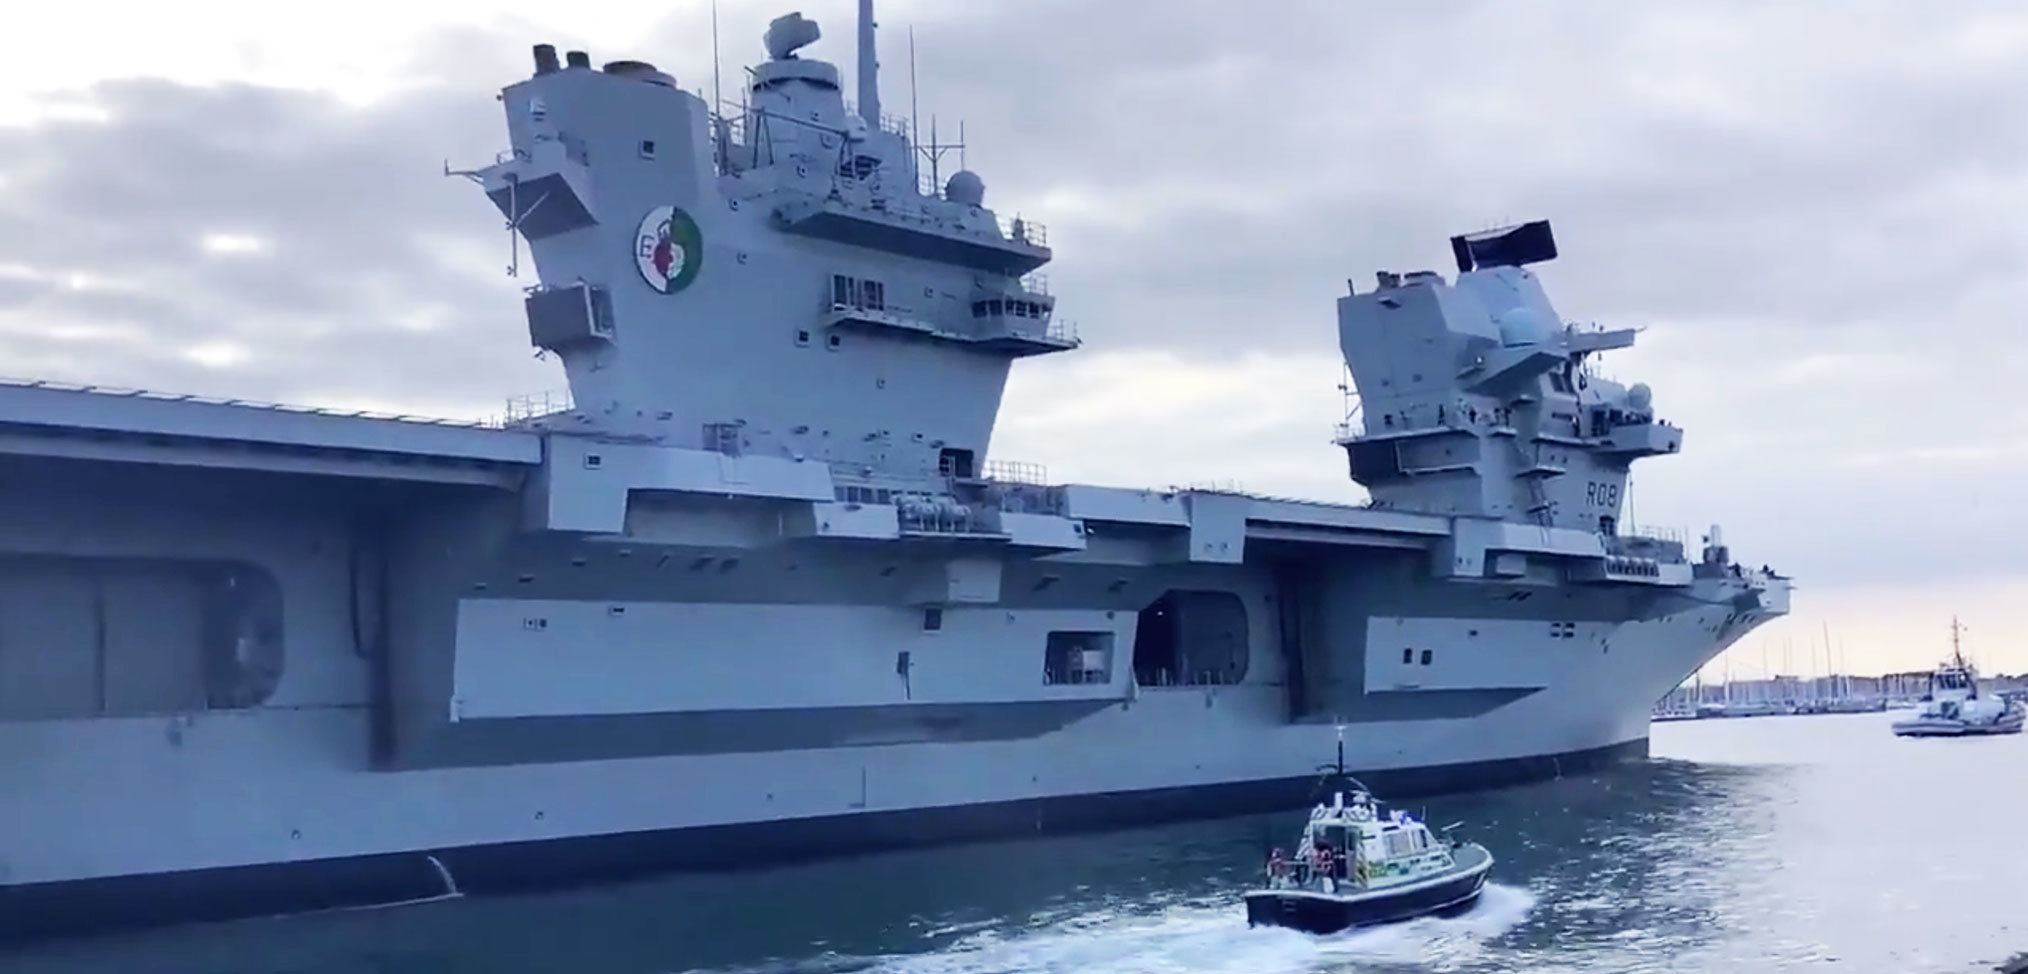 HMS Queen Elizabeth returns to Portsmouth early after suffering internal leak